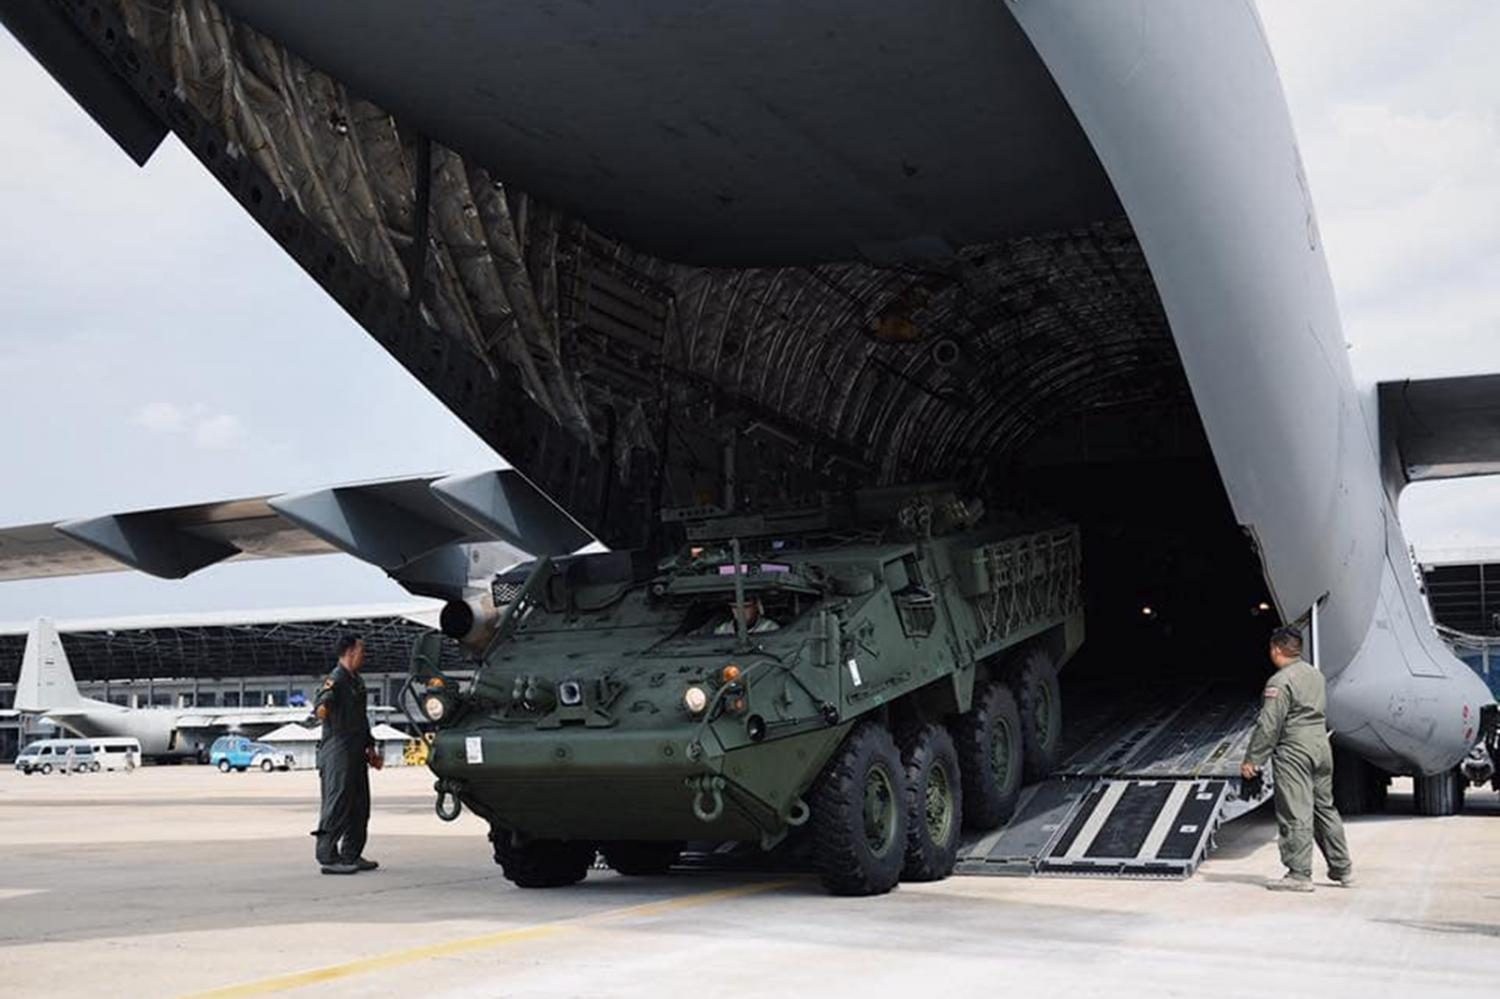 A Stryker tank is unloaded from the US Air Force's aircraft at the Military Air Terminal 2 in Bangkok late last month.FB/SmartSoldiersStrongArmy